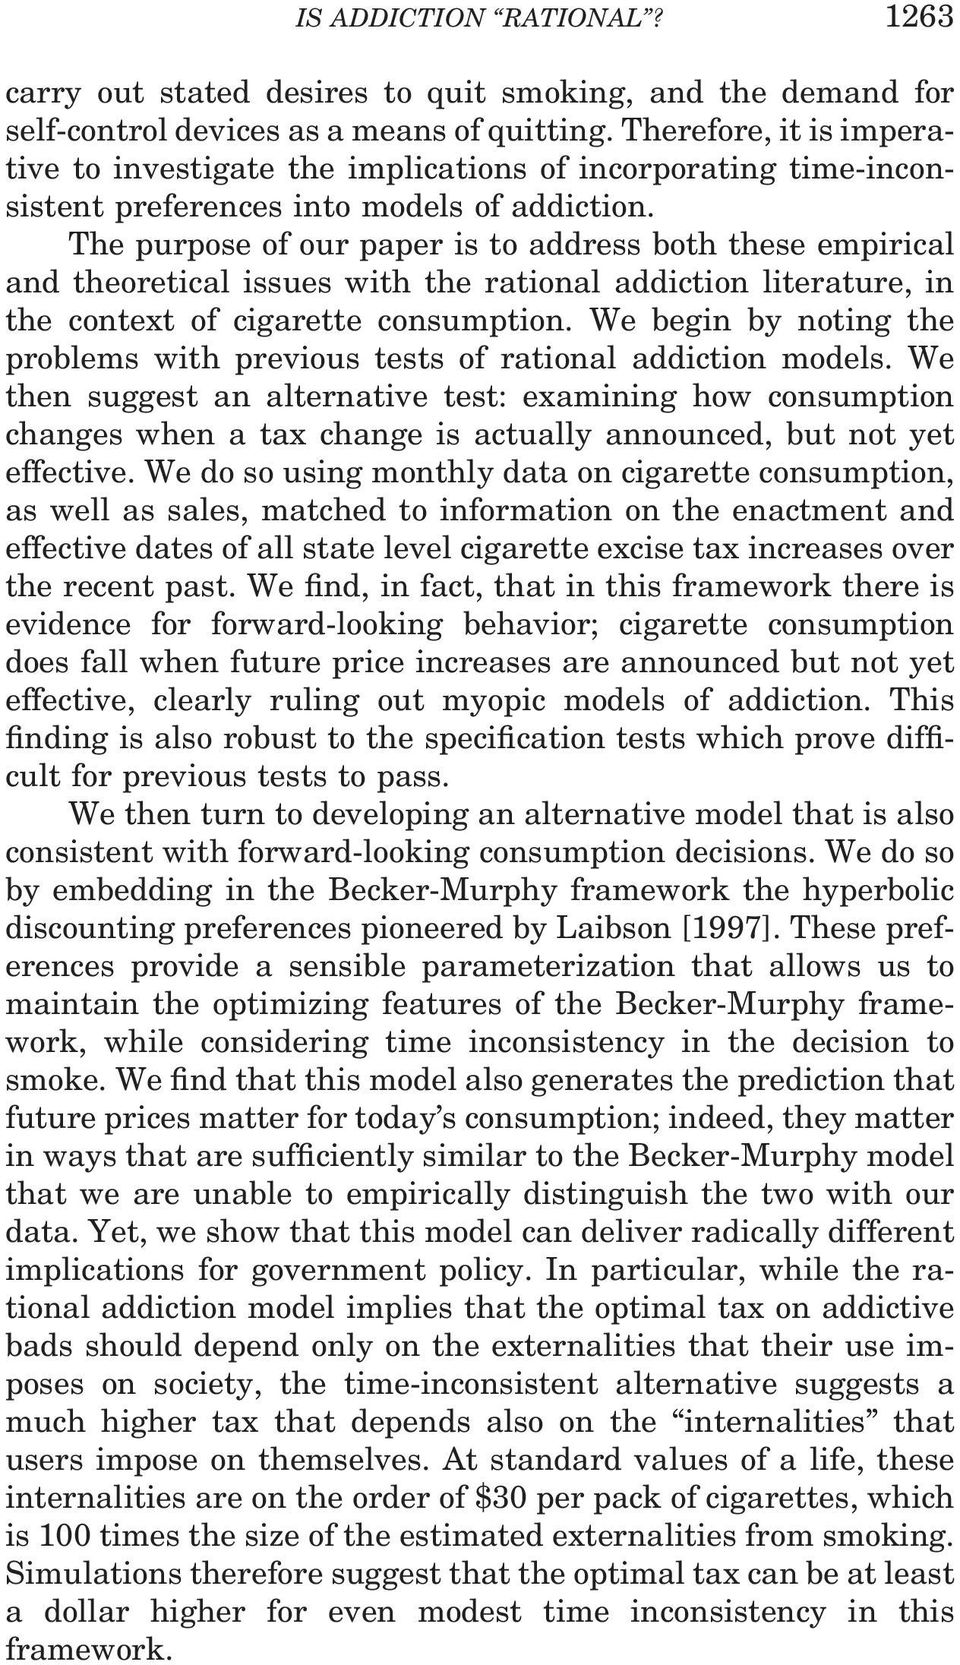 The purpose of our paper is to address both these empirical and theoretical issues with the rational addiction literature, in the context of cigarette consumption.